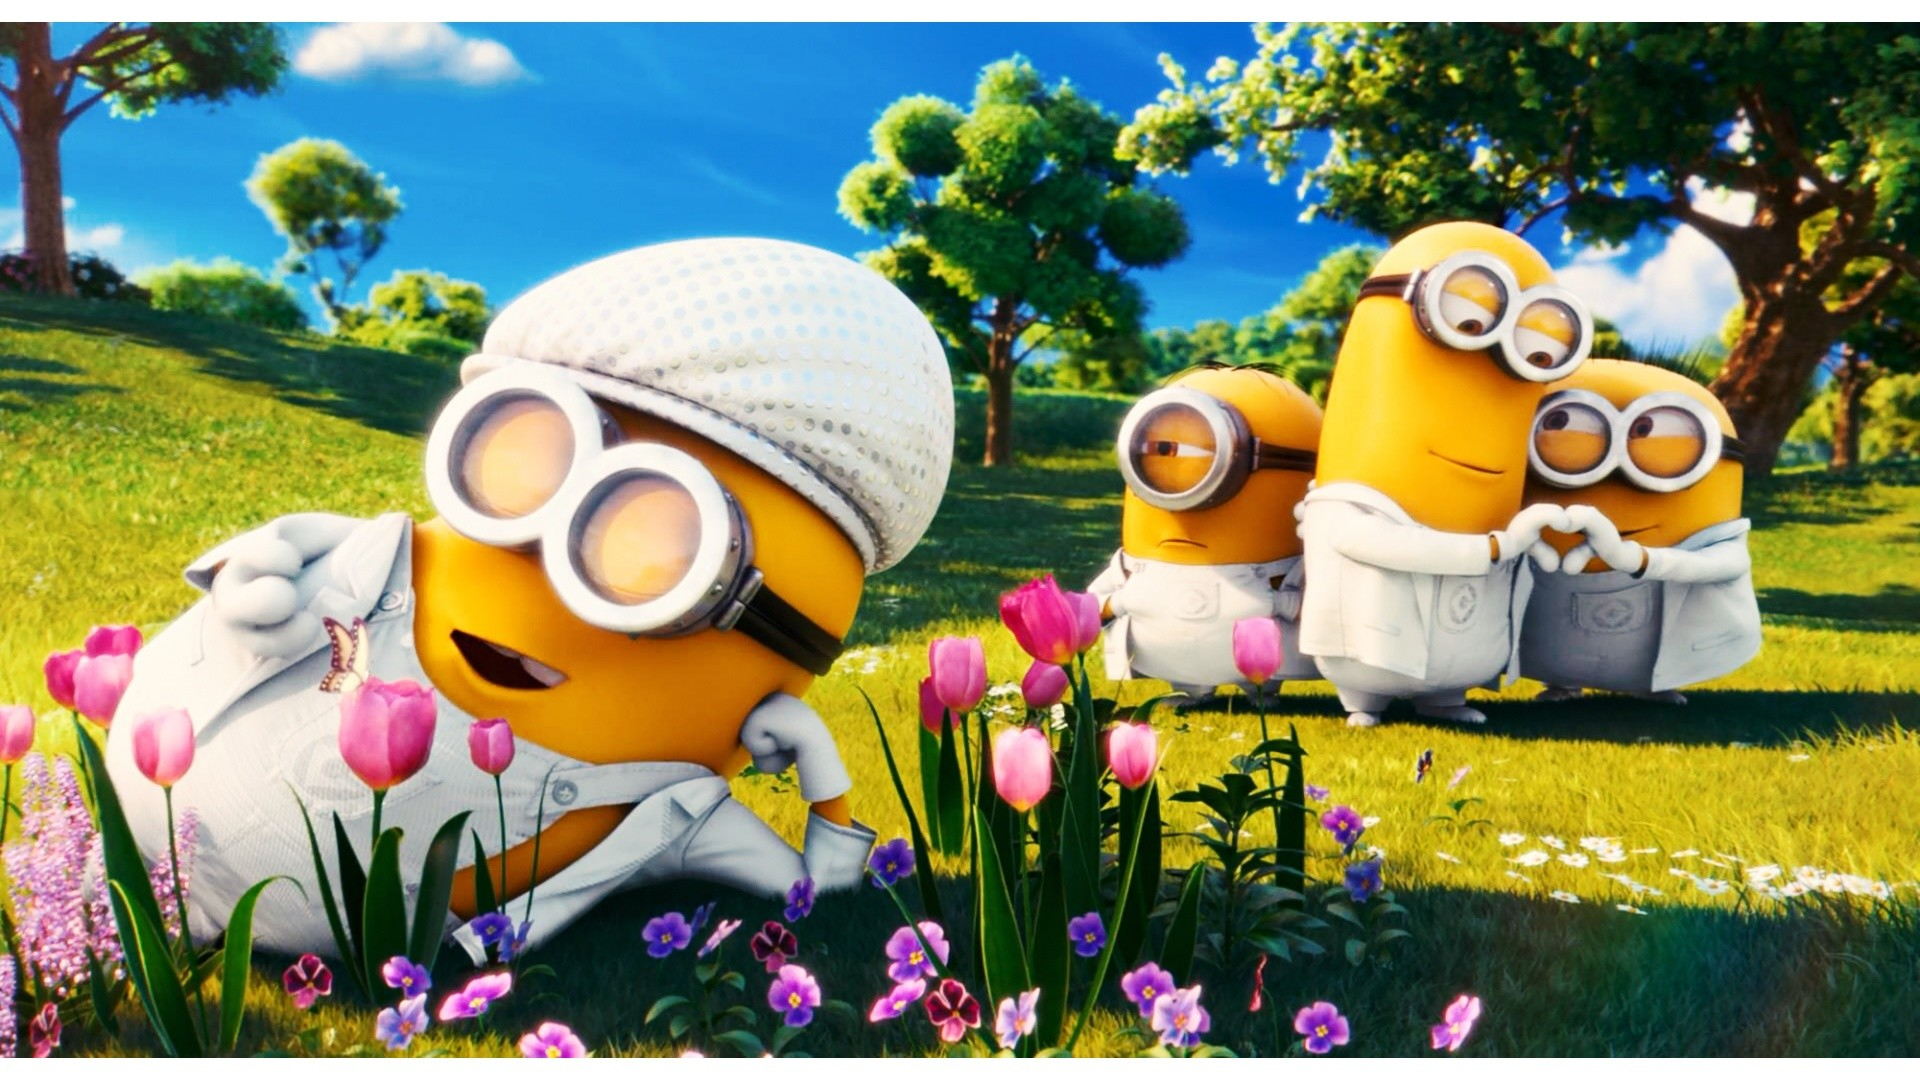 Minions Easter Wallpaper 80 Images